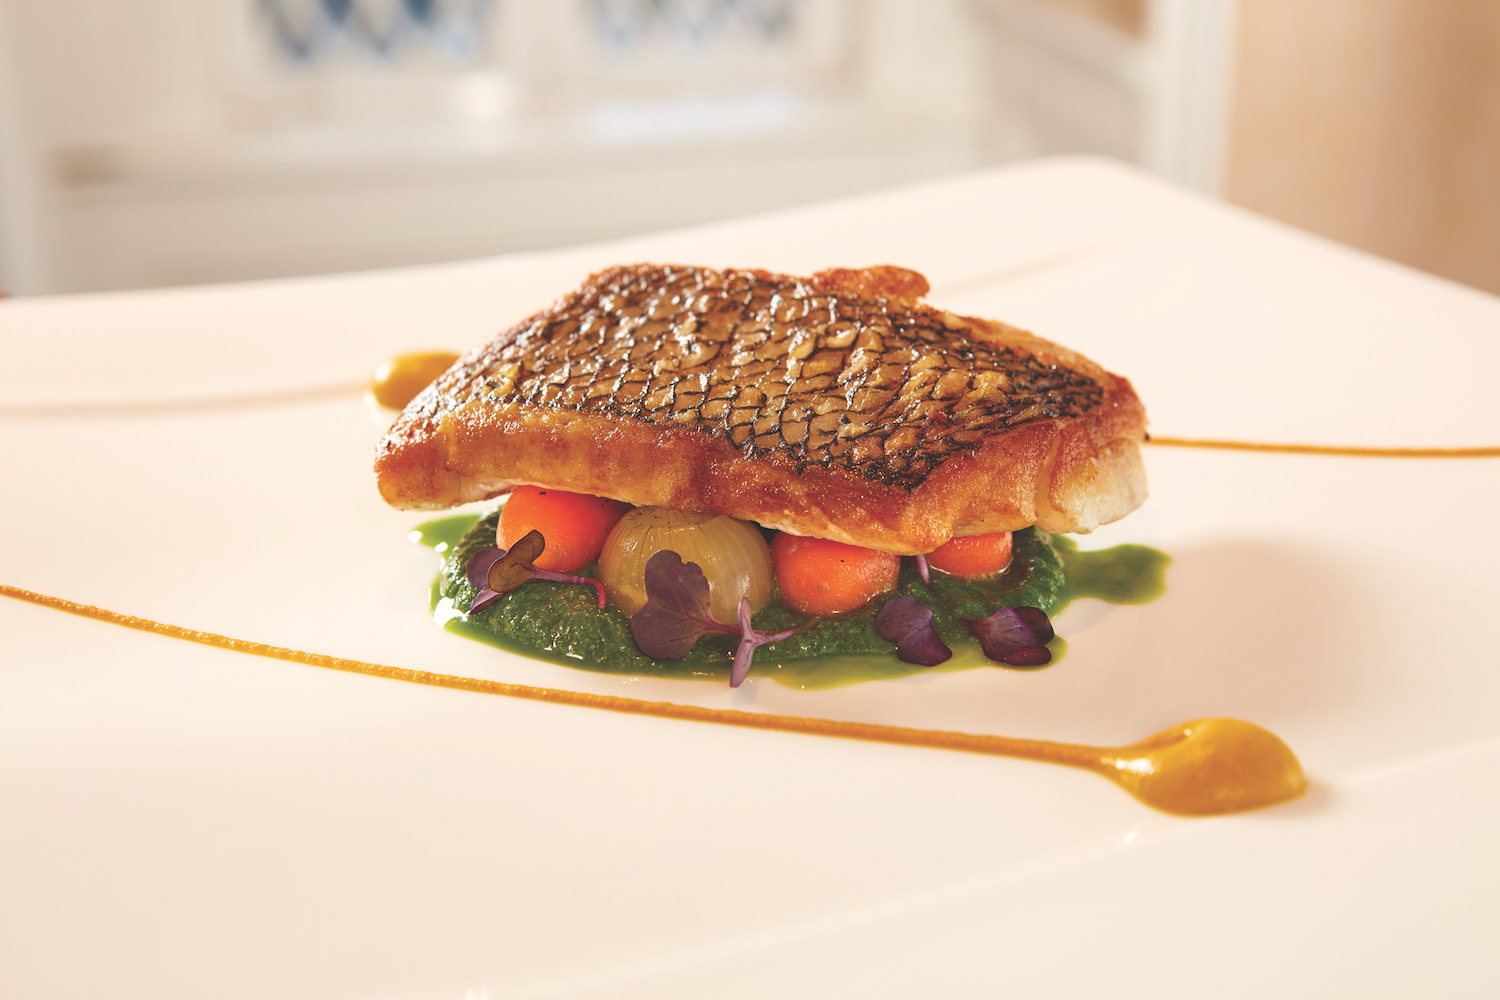 Muzio loves the challenge of cooking sea bass image: view